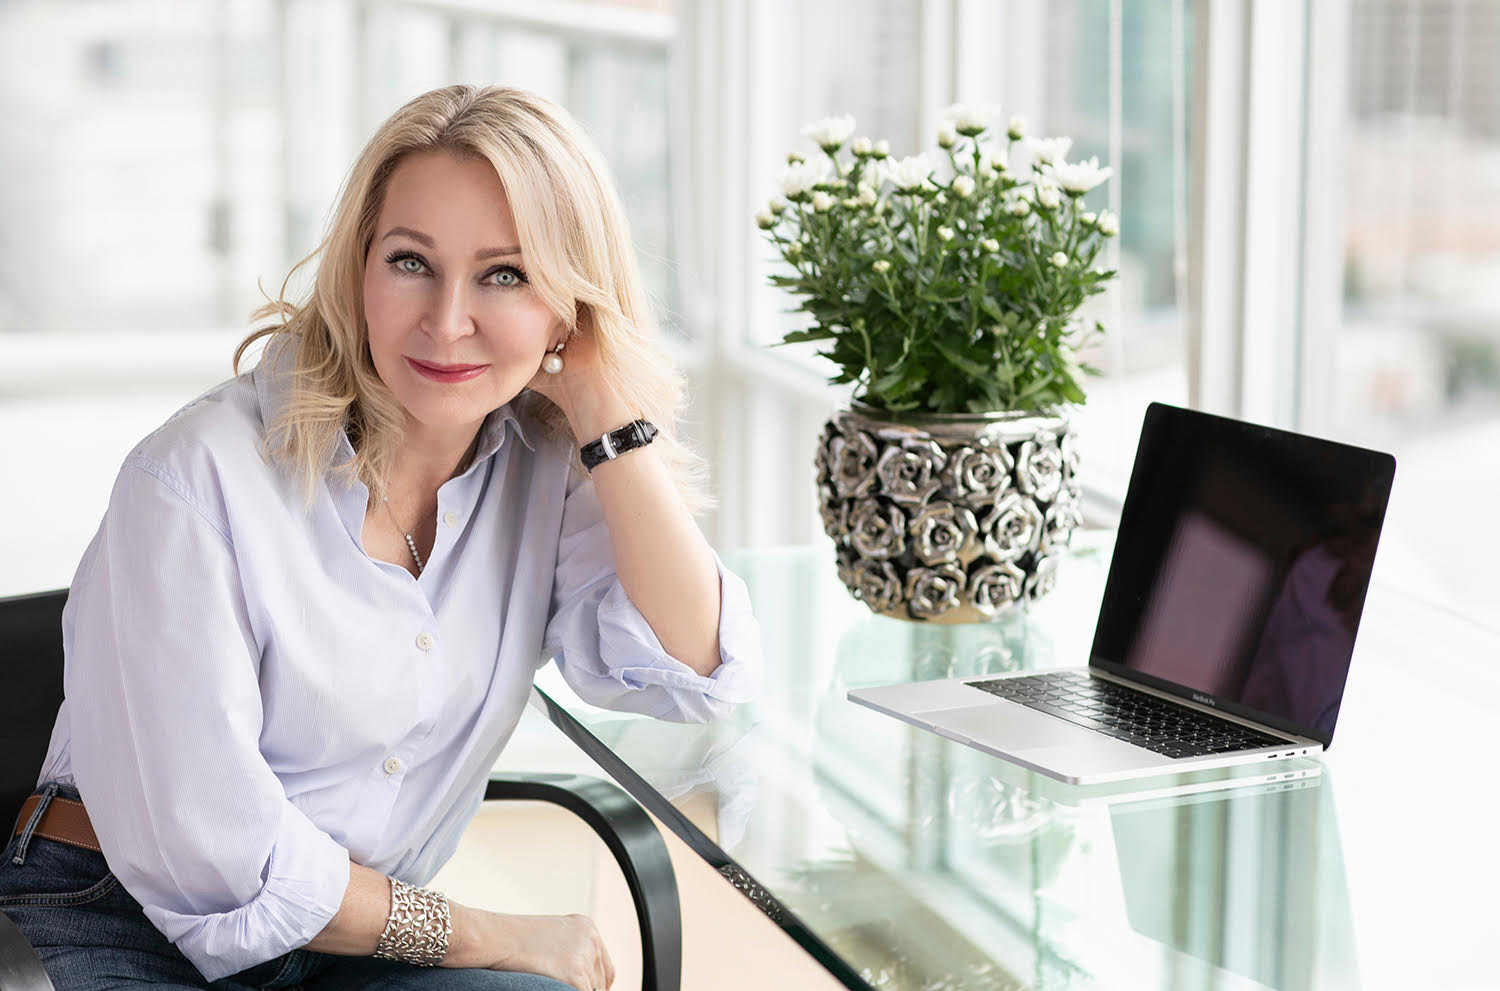 TatianaKonkina-photo-oct7-2019.jpg